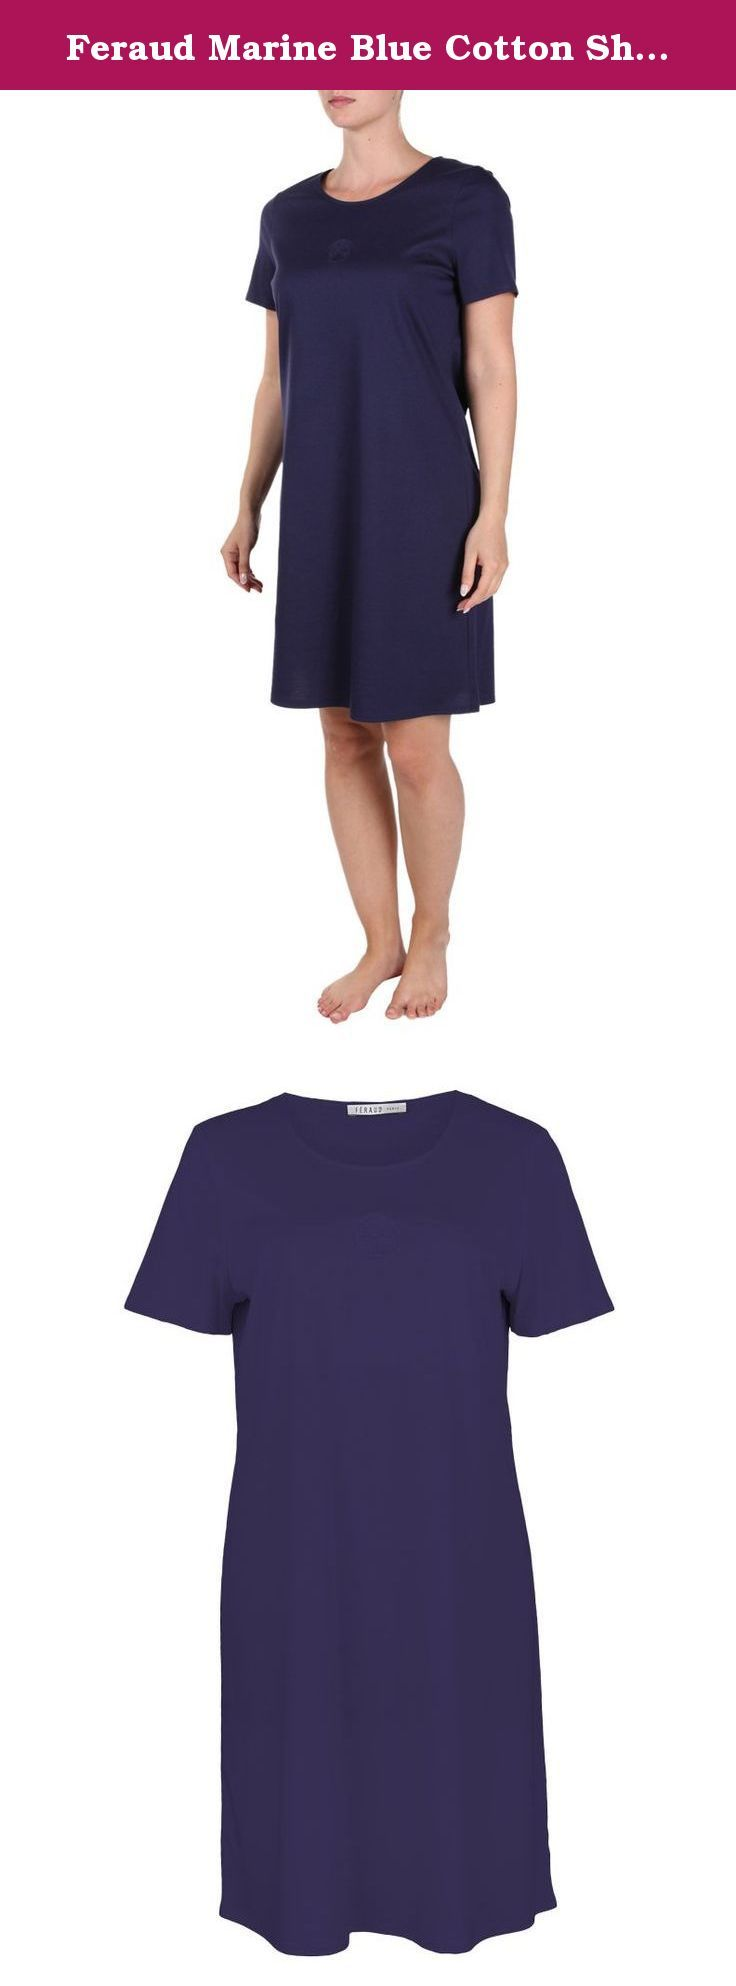 Feraud Marine Blue Cotton Short Sleeve Nightdress 3883006-10004 20 UK / 46 EU. Soft and luxurious marine blue short sleeve nightdress made from quality cotton. Finished with Feraud signature logo at the bust. 90cm in length. Makes a gorgeous nighttime option.